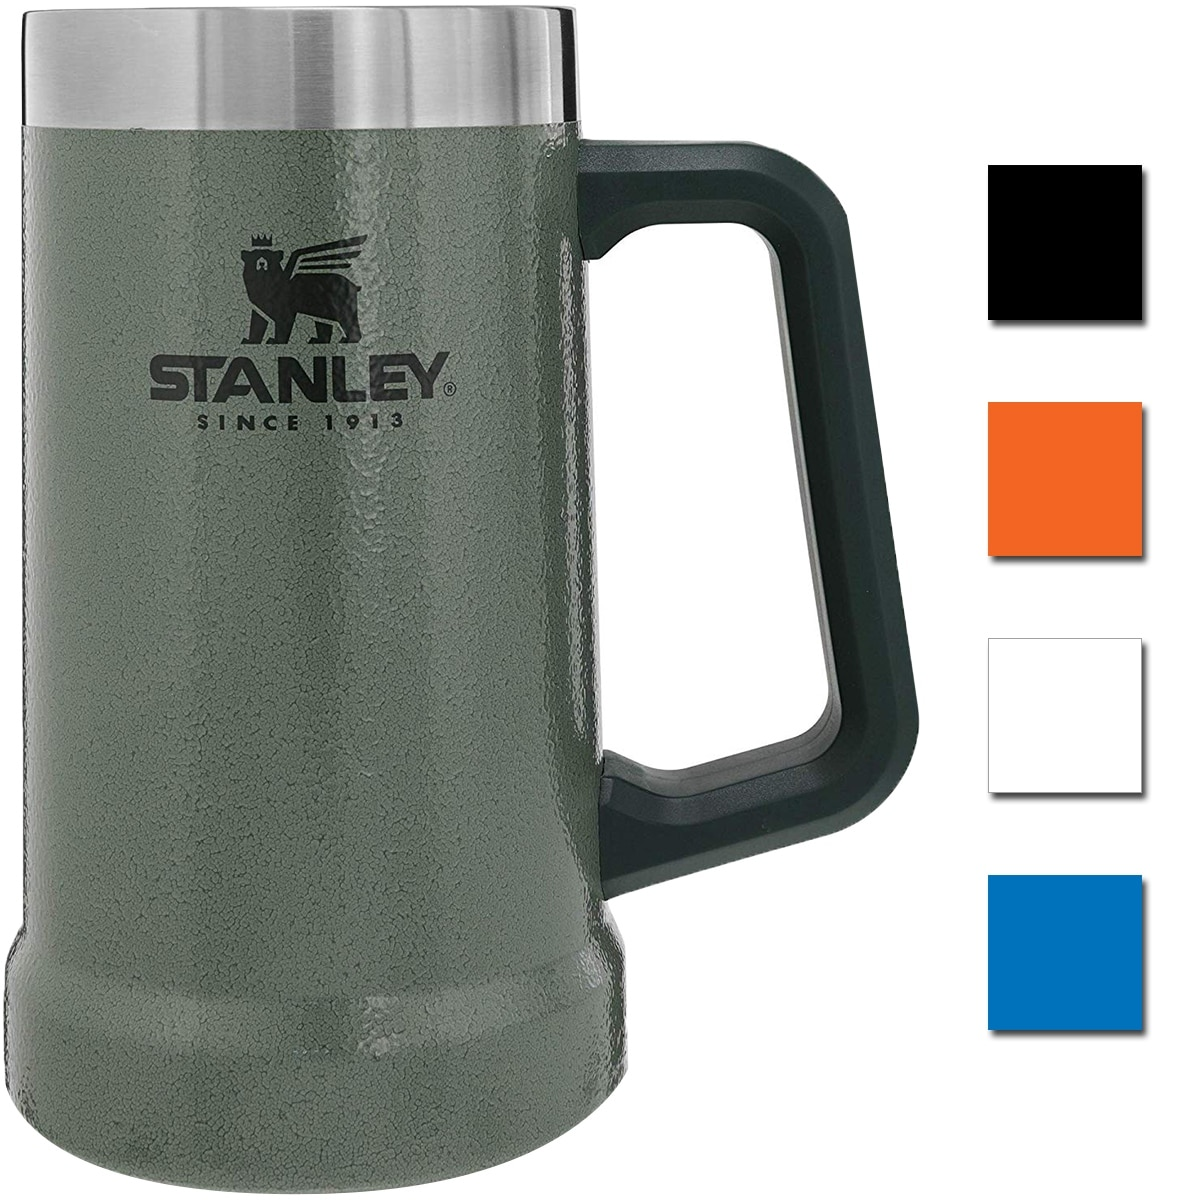 0cb498ead47 Stanley Camping & Hiking Gear | Find Great Outdoor Equipment Deals Shopping  at Overstock